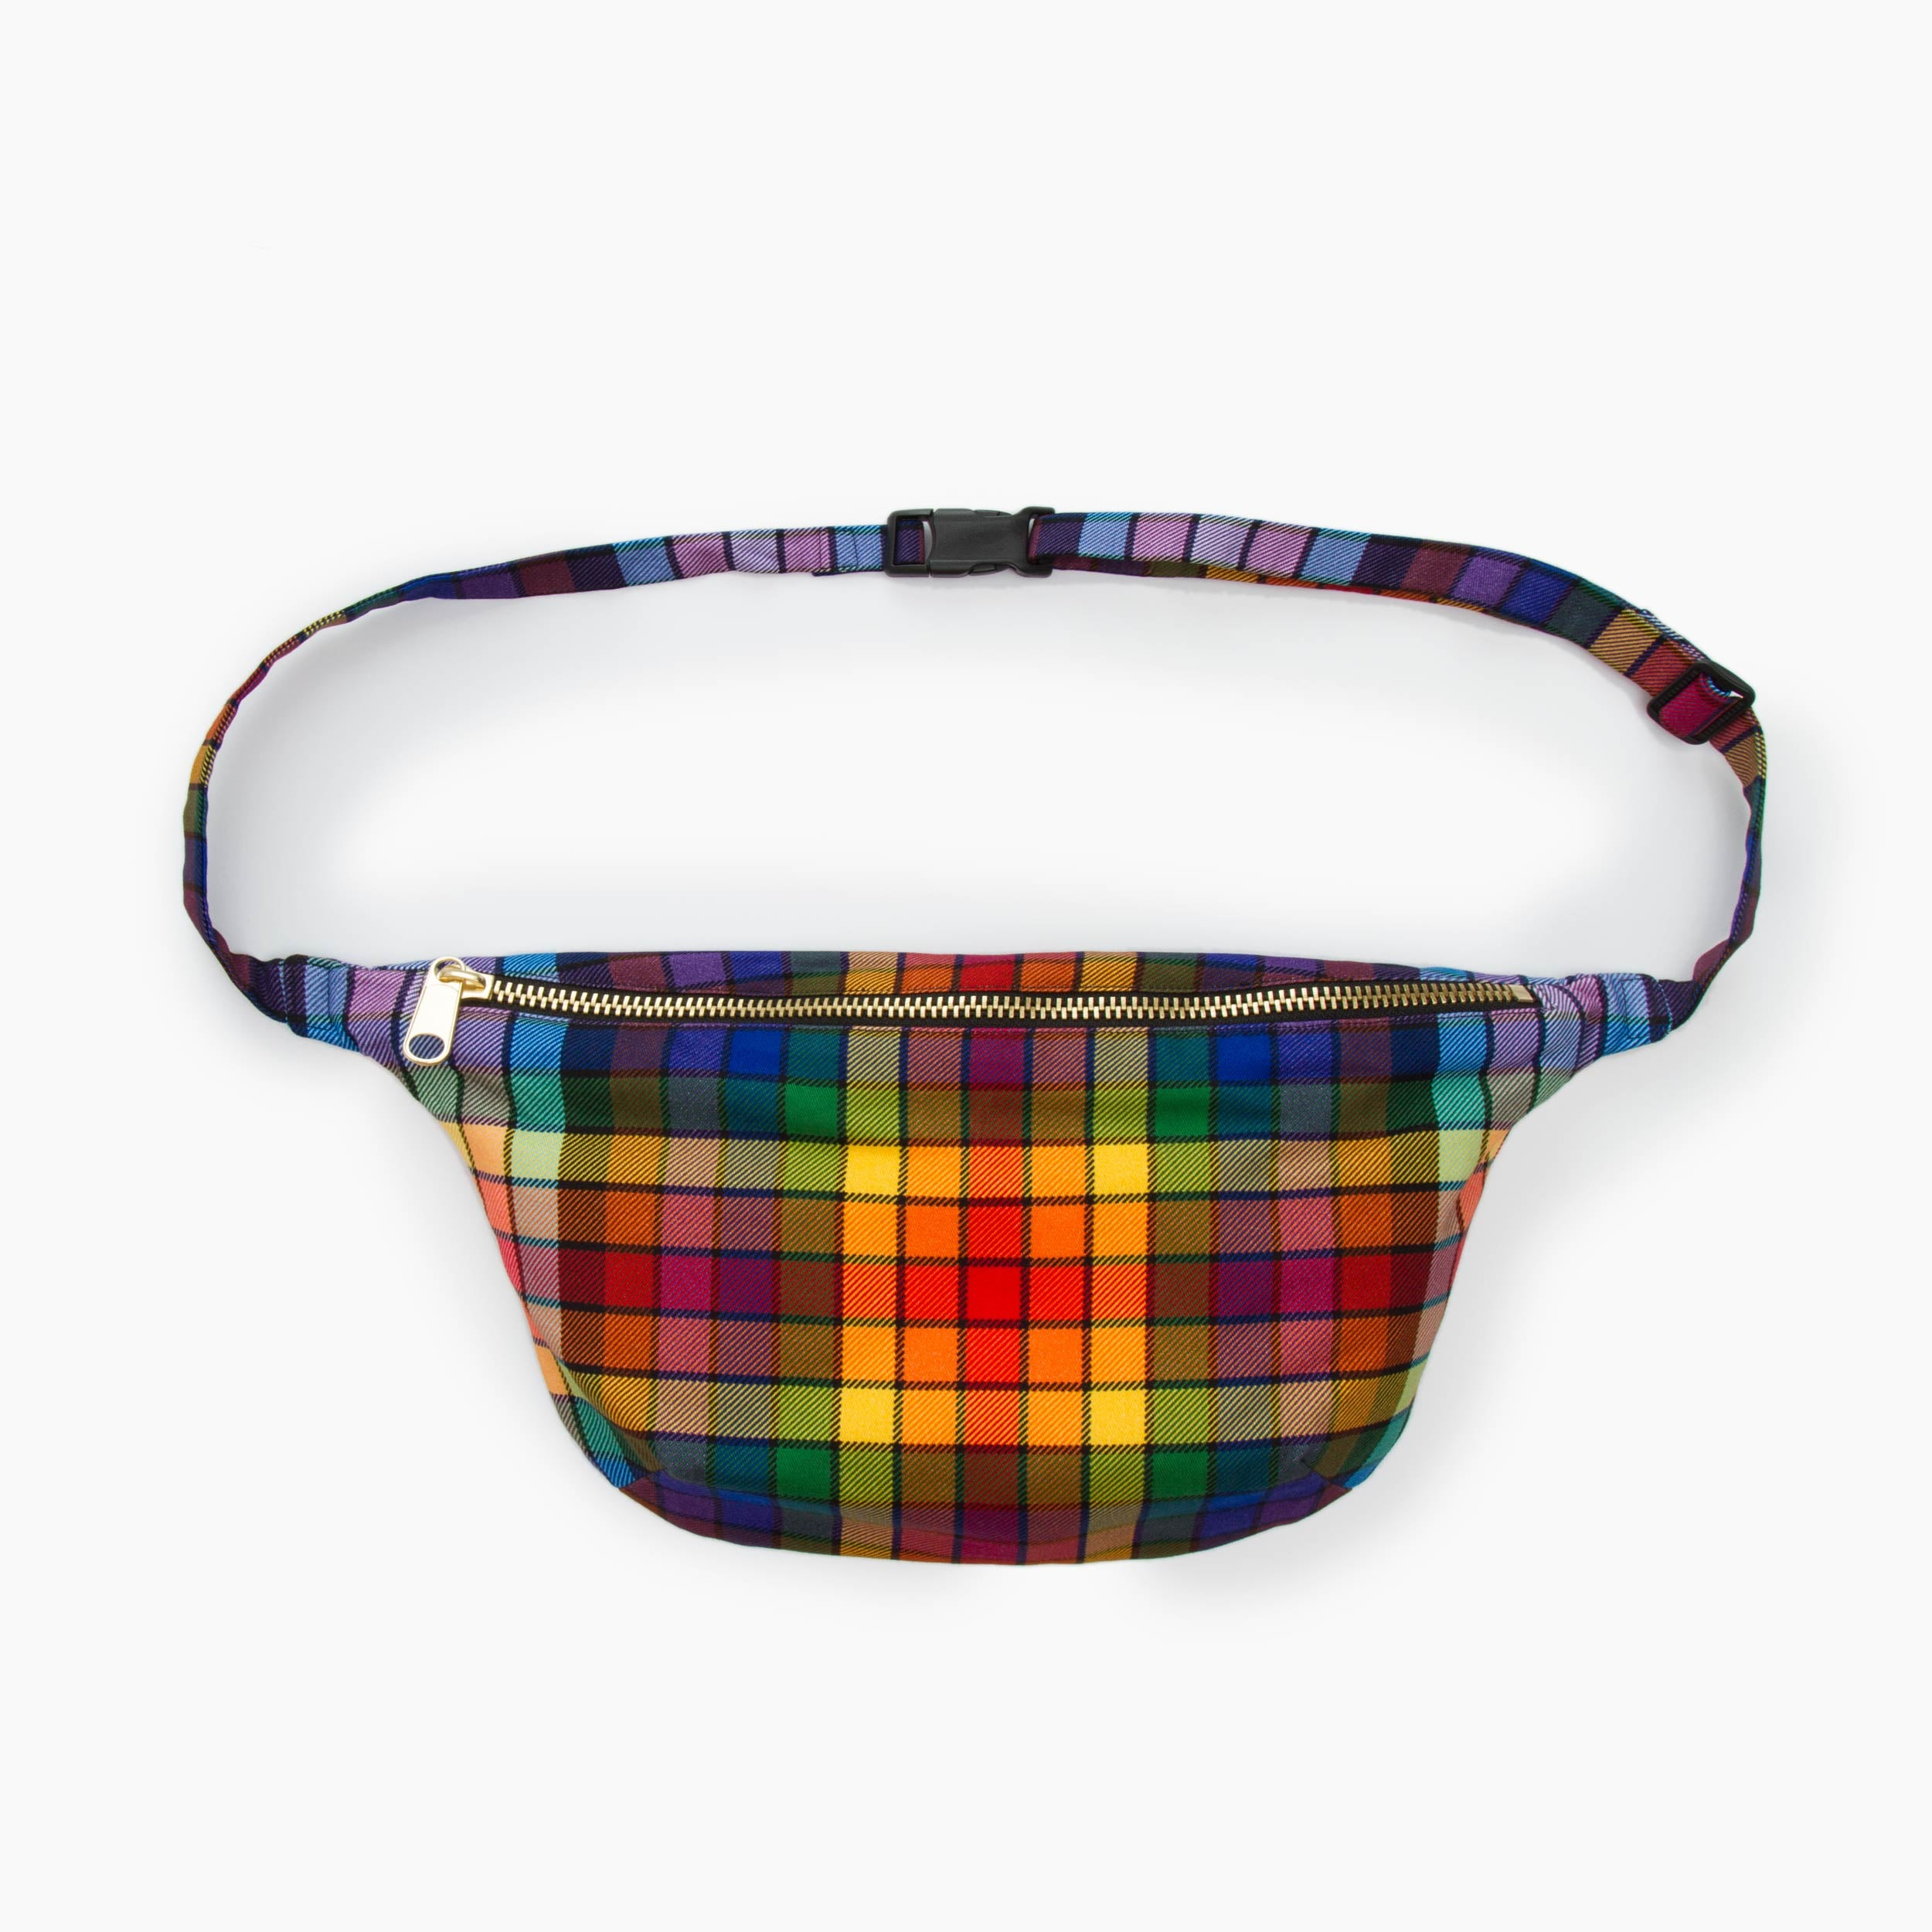 The Pride Plaid Sling Bag